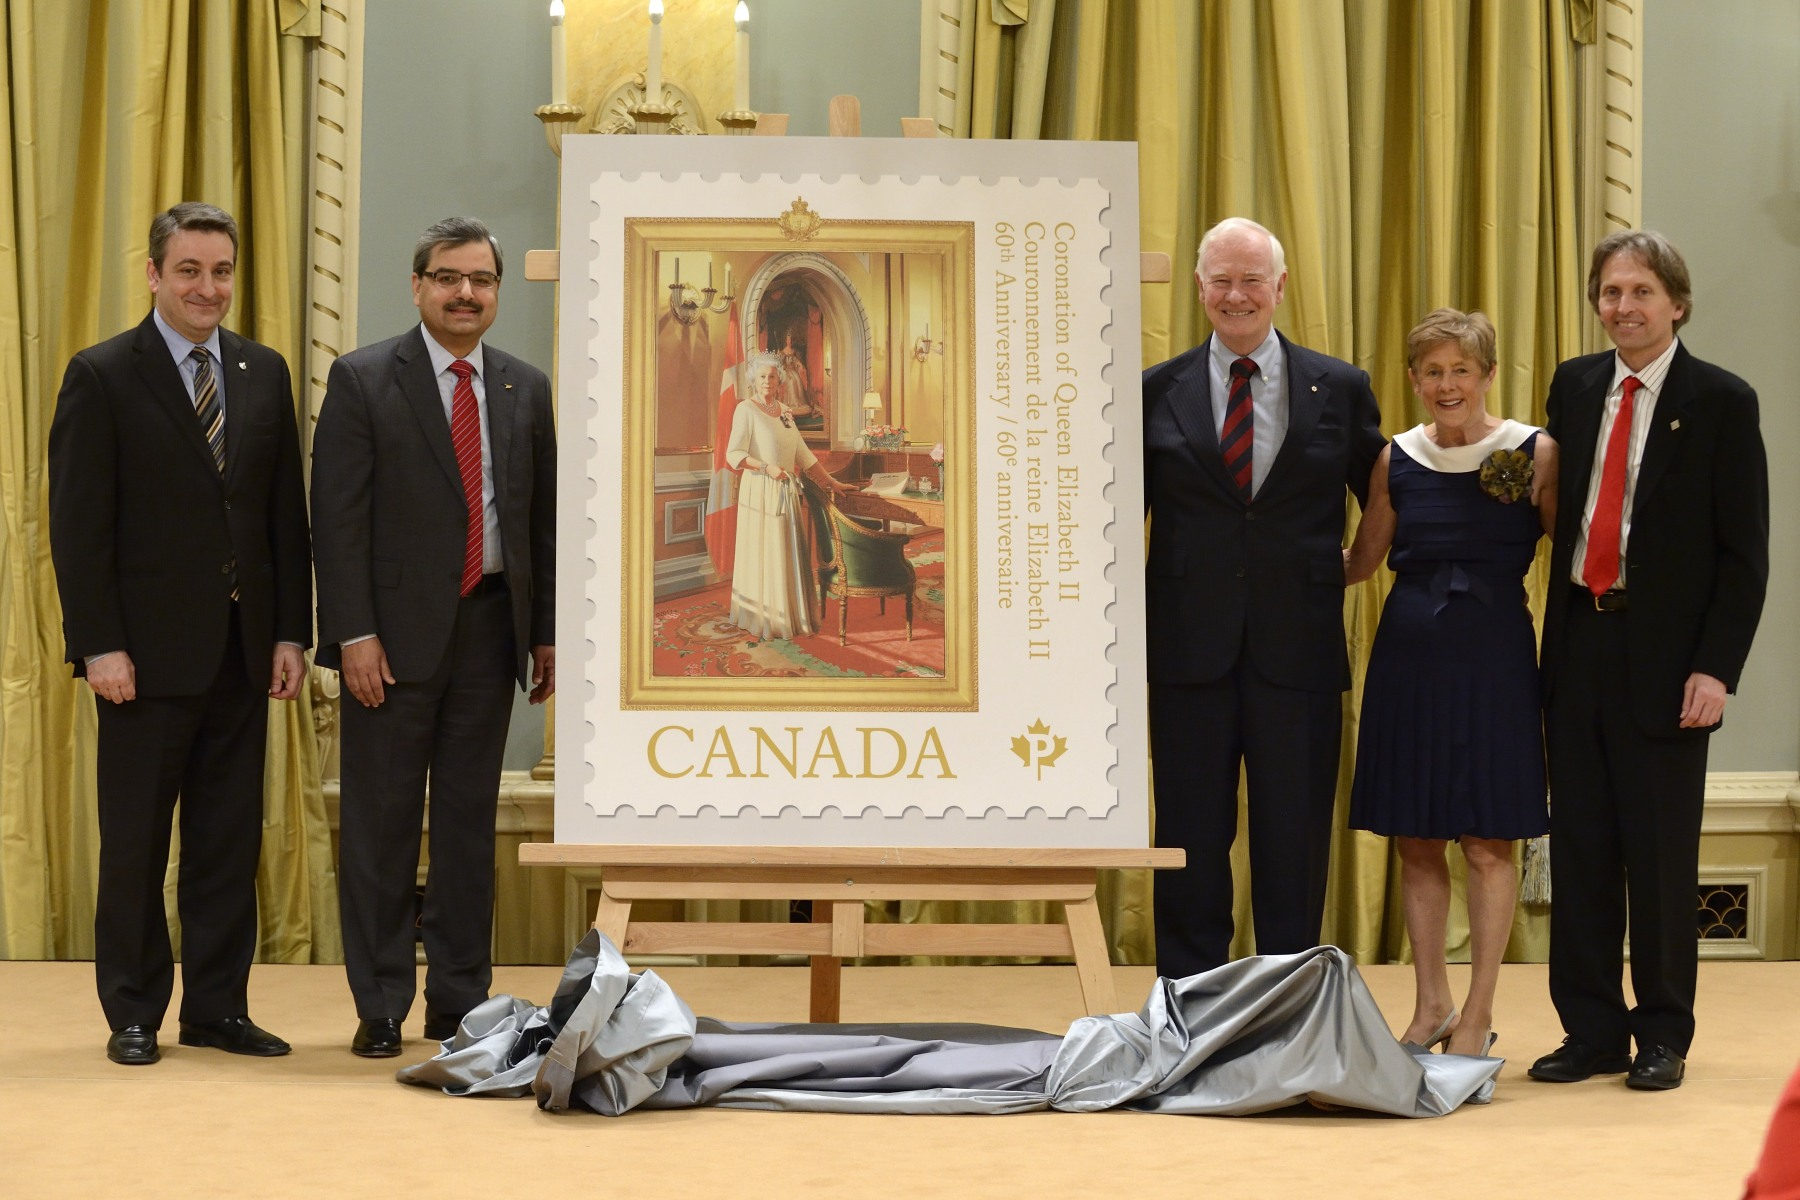 The portrait featured on the stamp was painted by Canadian artist Phil Richards (far right) on the occasion of Her Majesty's Diamond Jubilee. Officially unveiled by Her Majesty at Buckingham Palace on June 6, 2012, it is a contemporary representation of Her Majesty and a symbol of her presence in the governor general's official residence and workplace. Now installed in the Ballroom at Rideau Hall, the public can view the portrait during tours and official events at the residence.